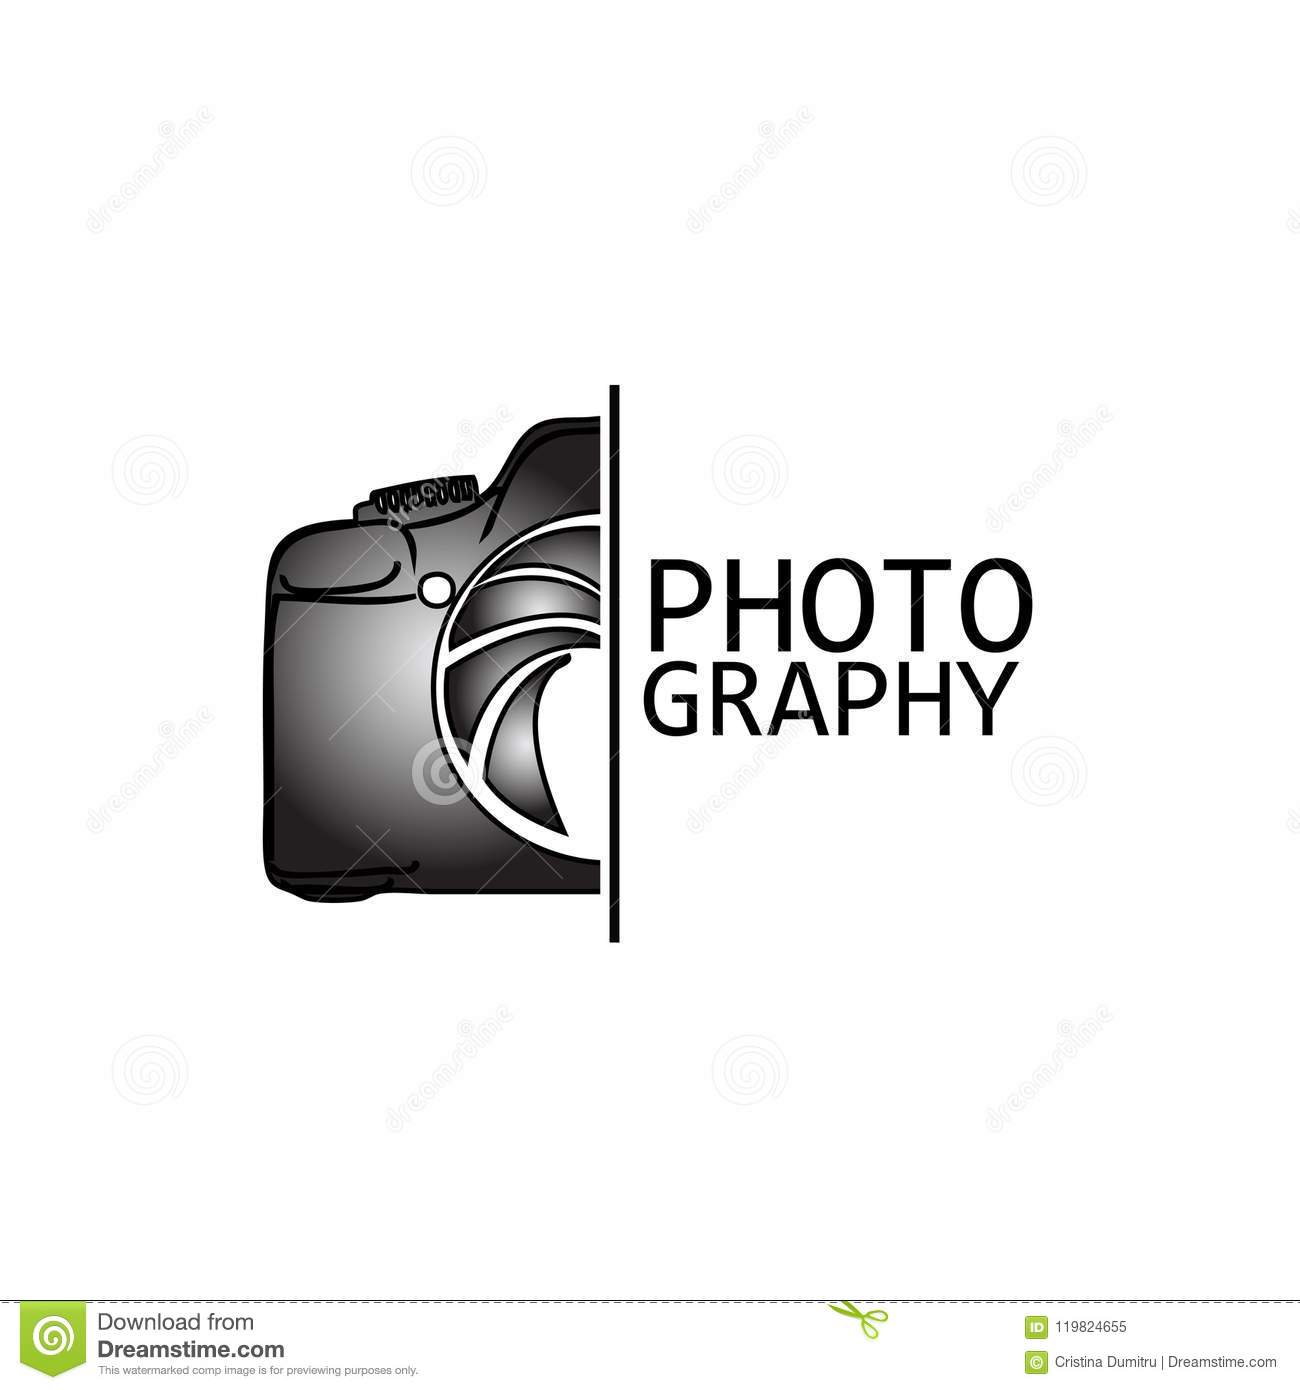 Photography Stock Illustrations 186 724 Photography Stock Illustrations Vectors Clipart Dreamstime